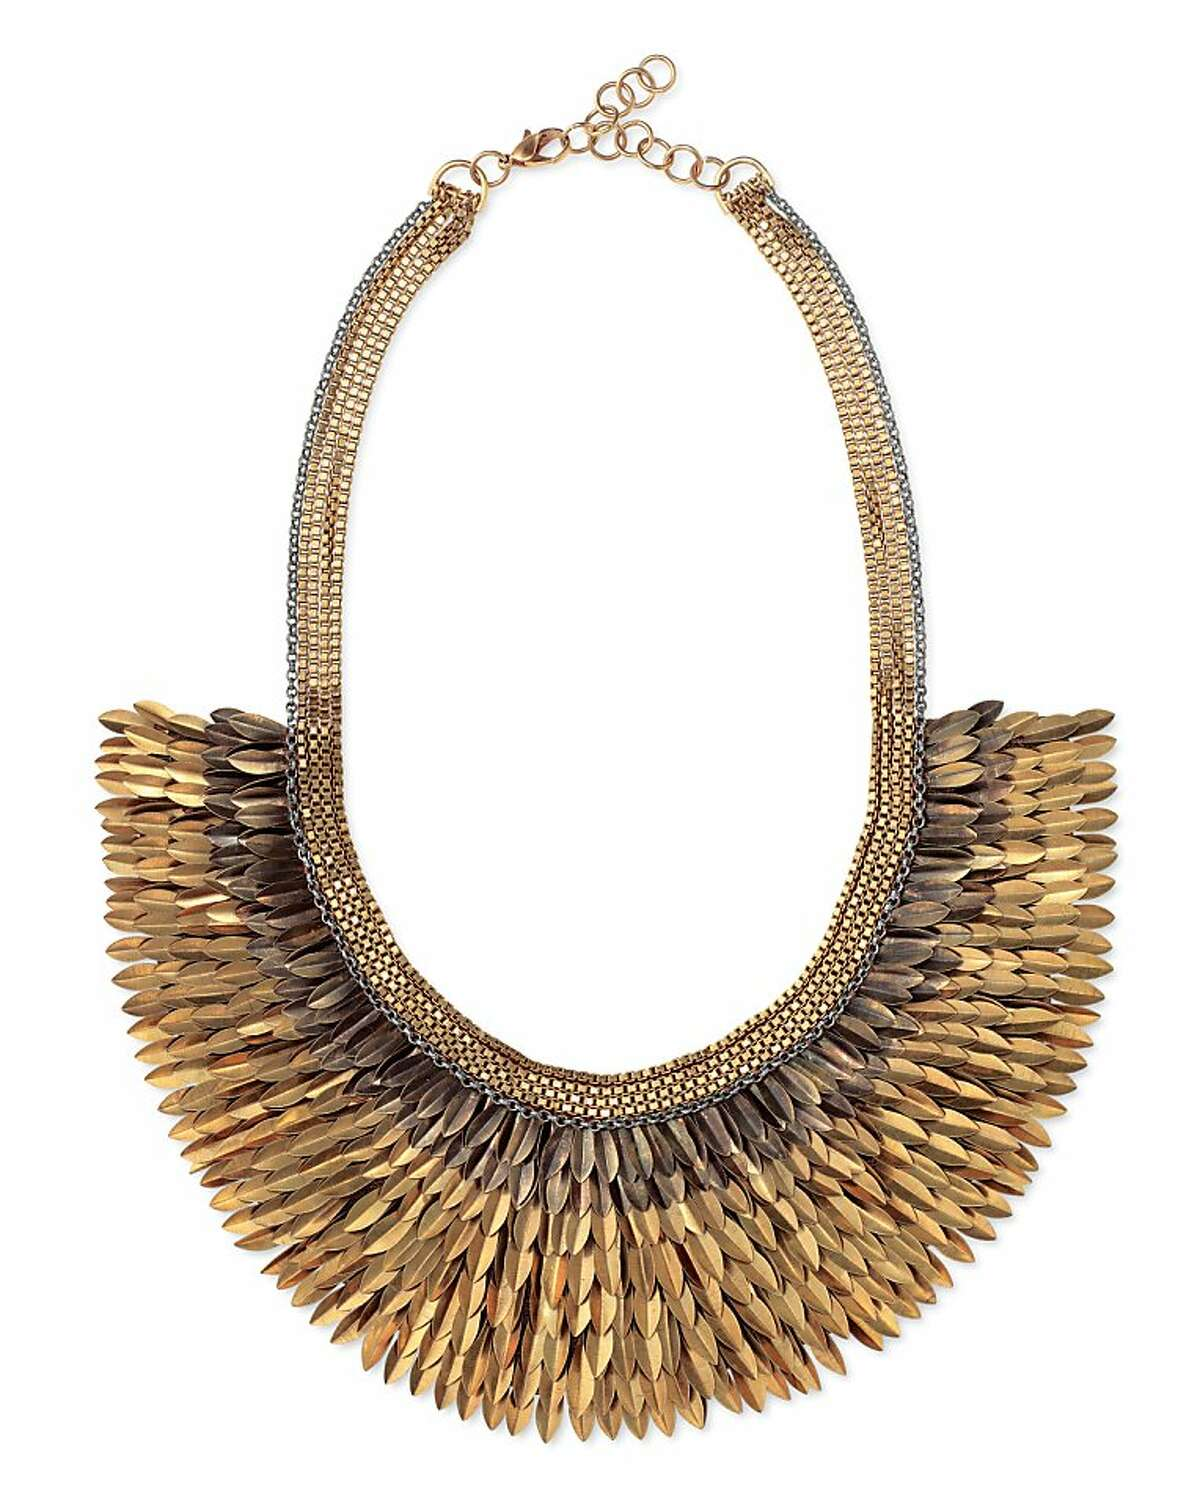 """Stella & Dot's jewelry line includes this necklace. """"The Pegasus"""" is a showstopper,"""" the founders say. """"It transforms any outfit into a 'wow' and is perfect for day or night. Each piece takes over two days to hand-embroider."""" ($198)"""